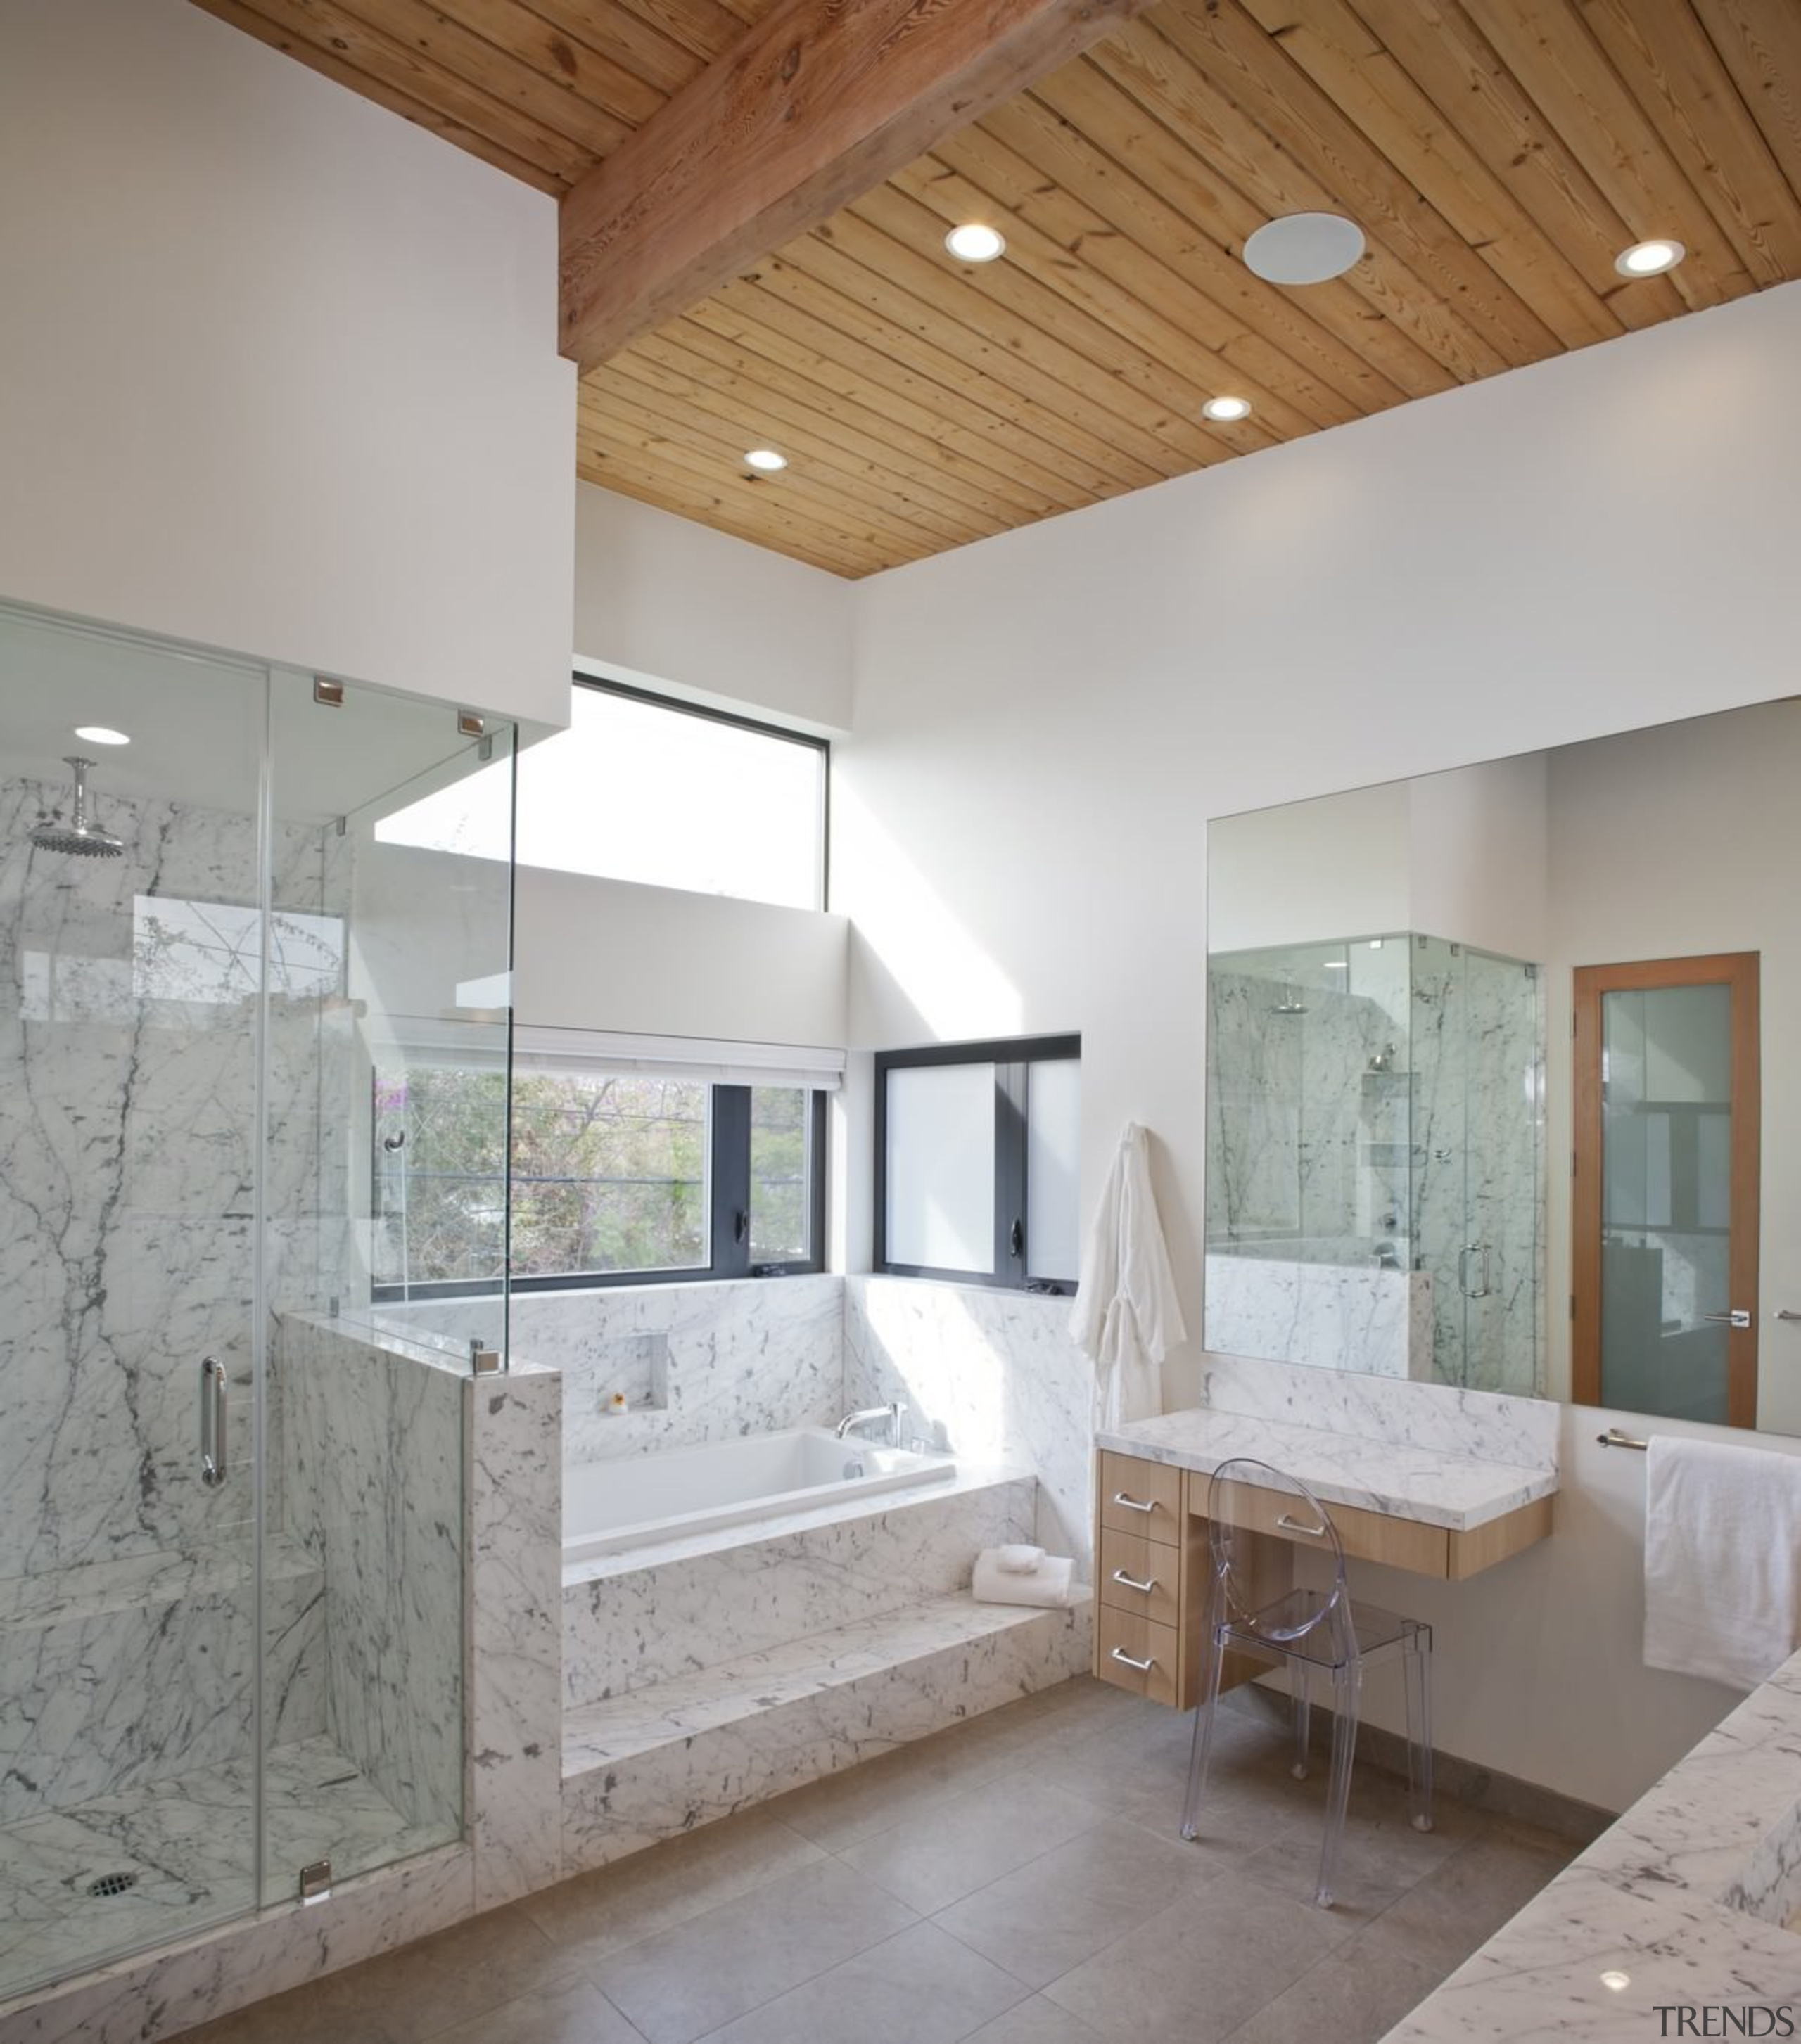 The wood ceilings carry through to the bathroom architecture, bathroom, ceiling, daylighting, estate, floor, flooring, home, house, interior design, room, tile, gray